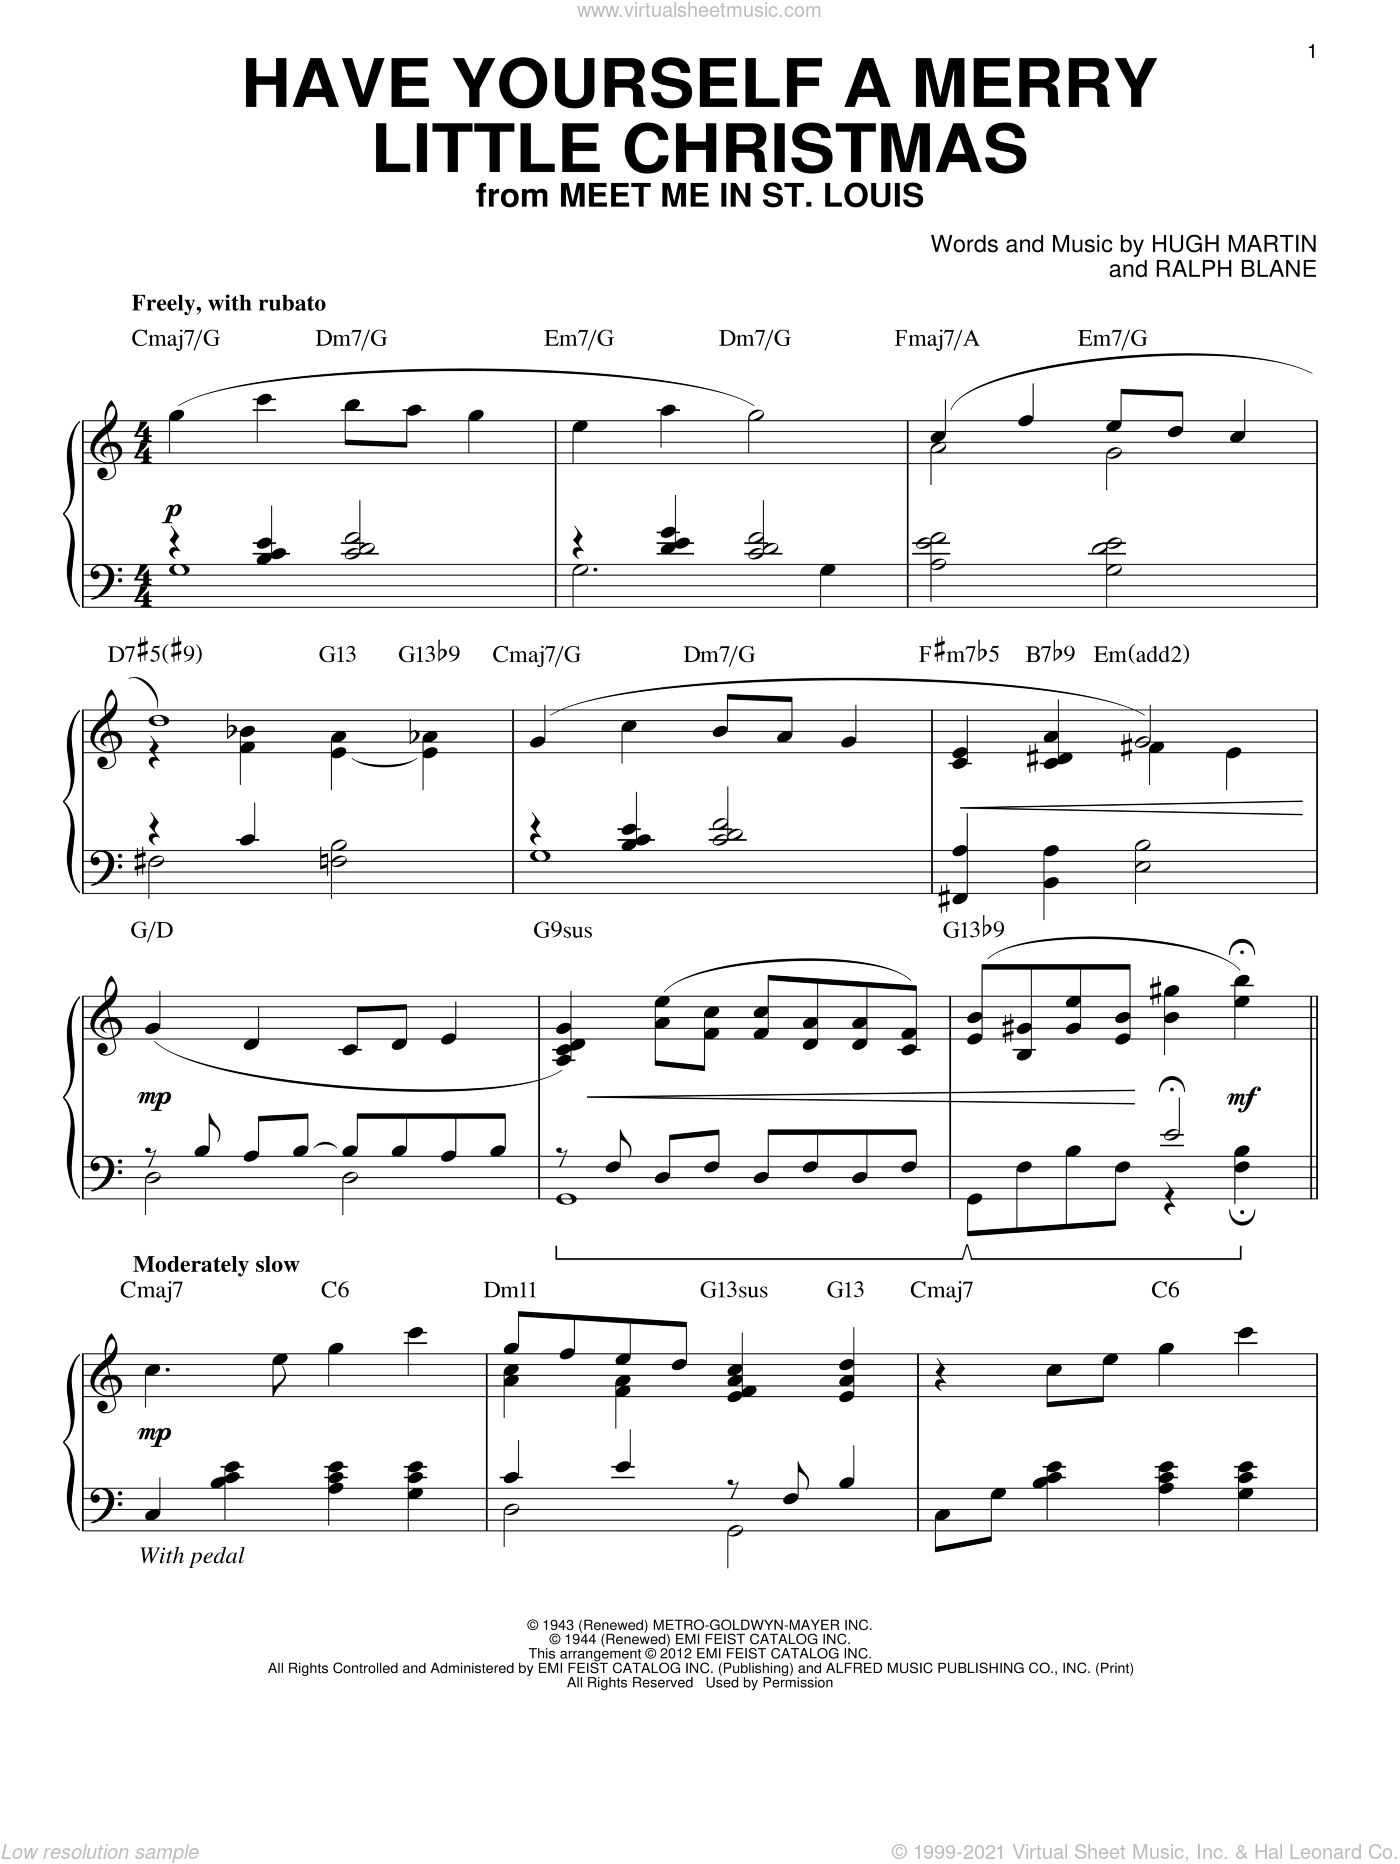 Have Yourself A Merry Little Christmas sheet music for piano solo by Ralph Blane, Frank Sinatra and Hugh Martin, intermediate skill level